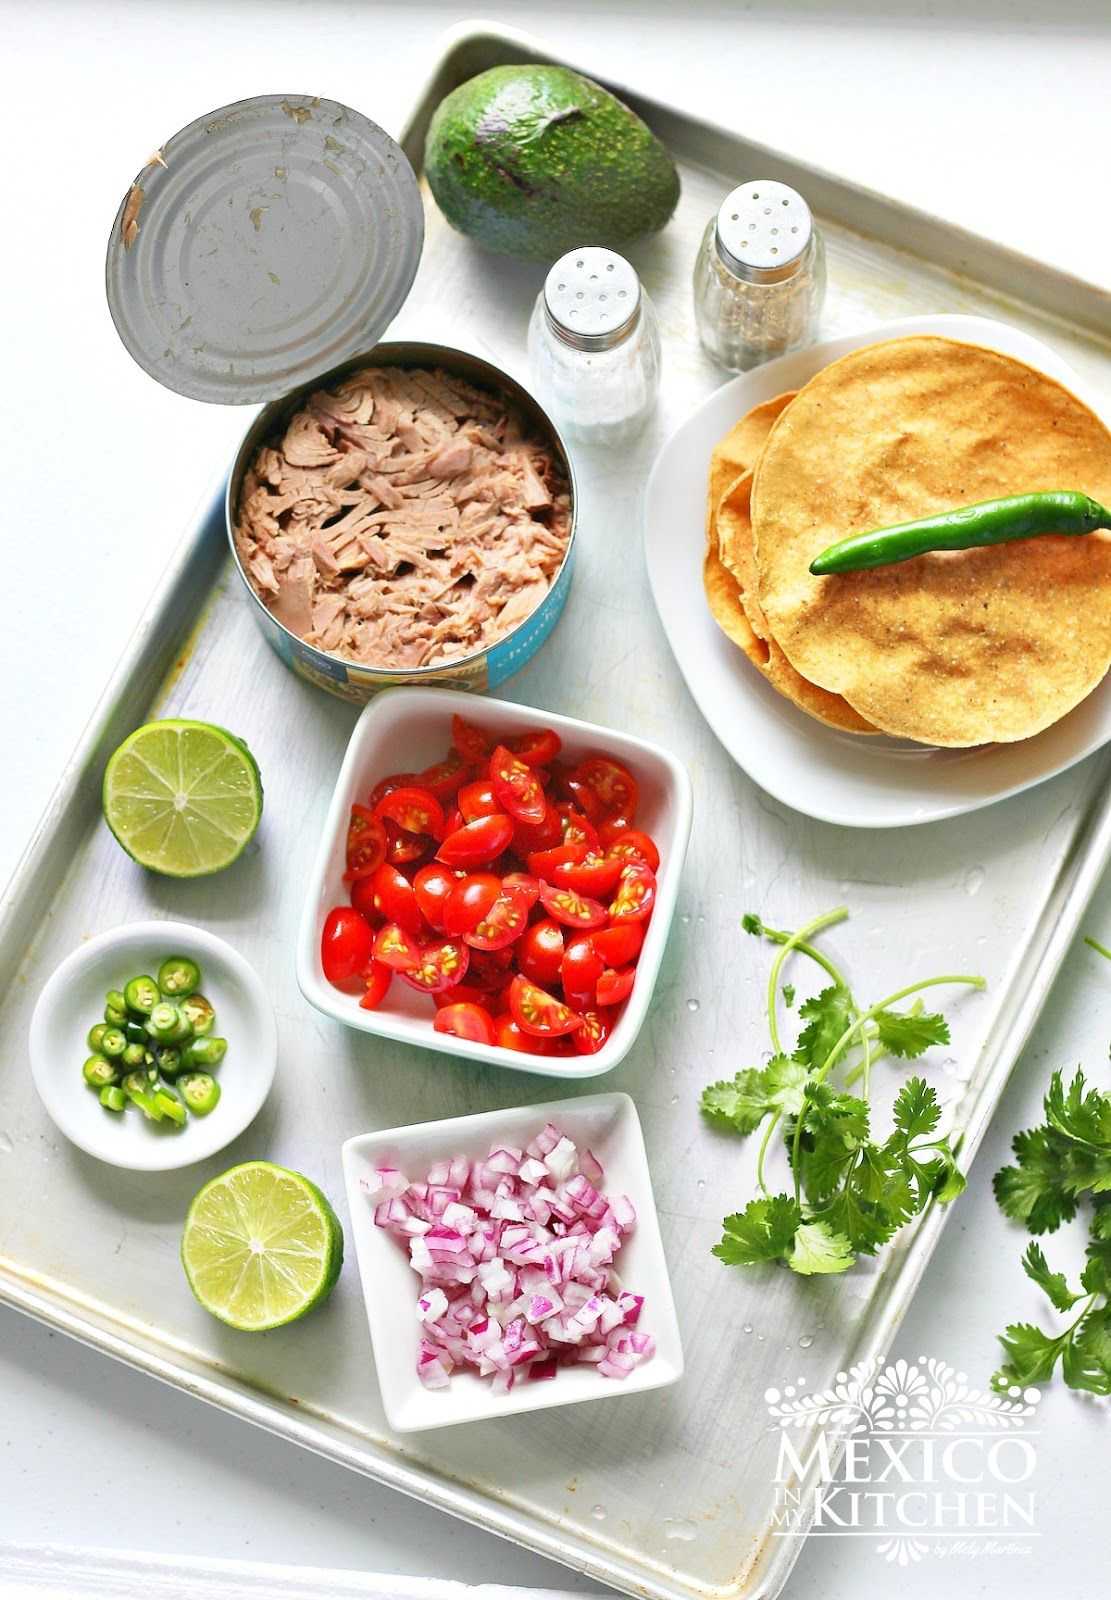 Mexico in my Kitchen: Canned Tuna Ceviche Tostadas Authentic Mexican Food Recipes Traditional Blog